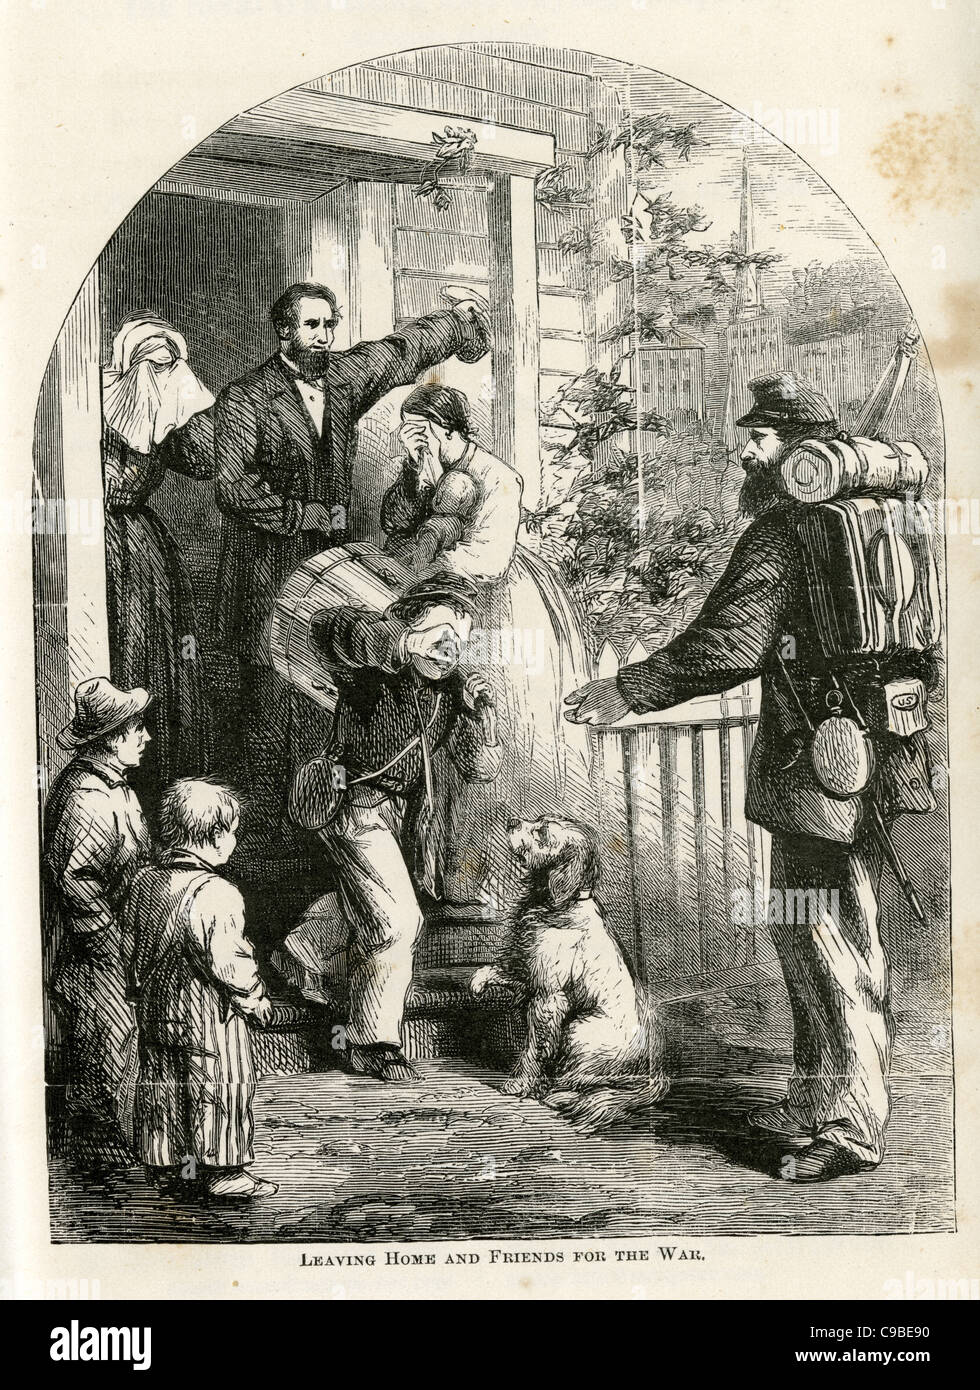 Antique engraving of a drummer boy leaving home. From 1867 Civil war book, The Boys in Blue. - Stock Image